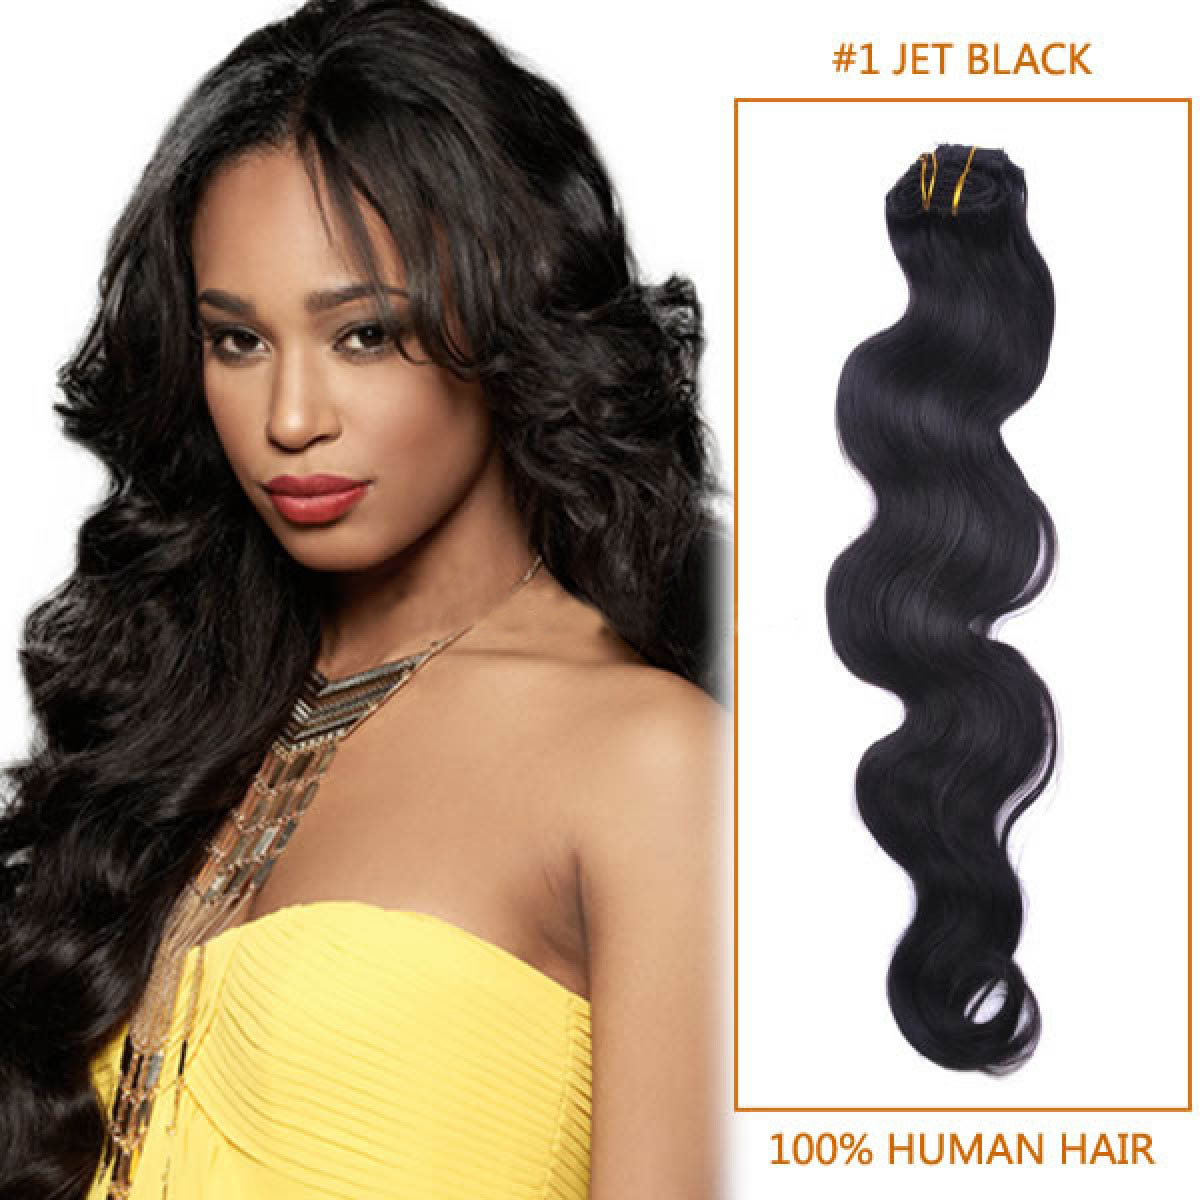 16 Inch 1 Jet Black Body Wave Brazilian Virgin Hair Wefts